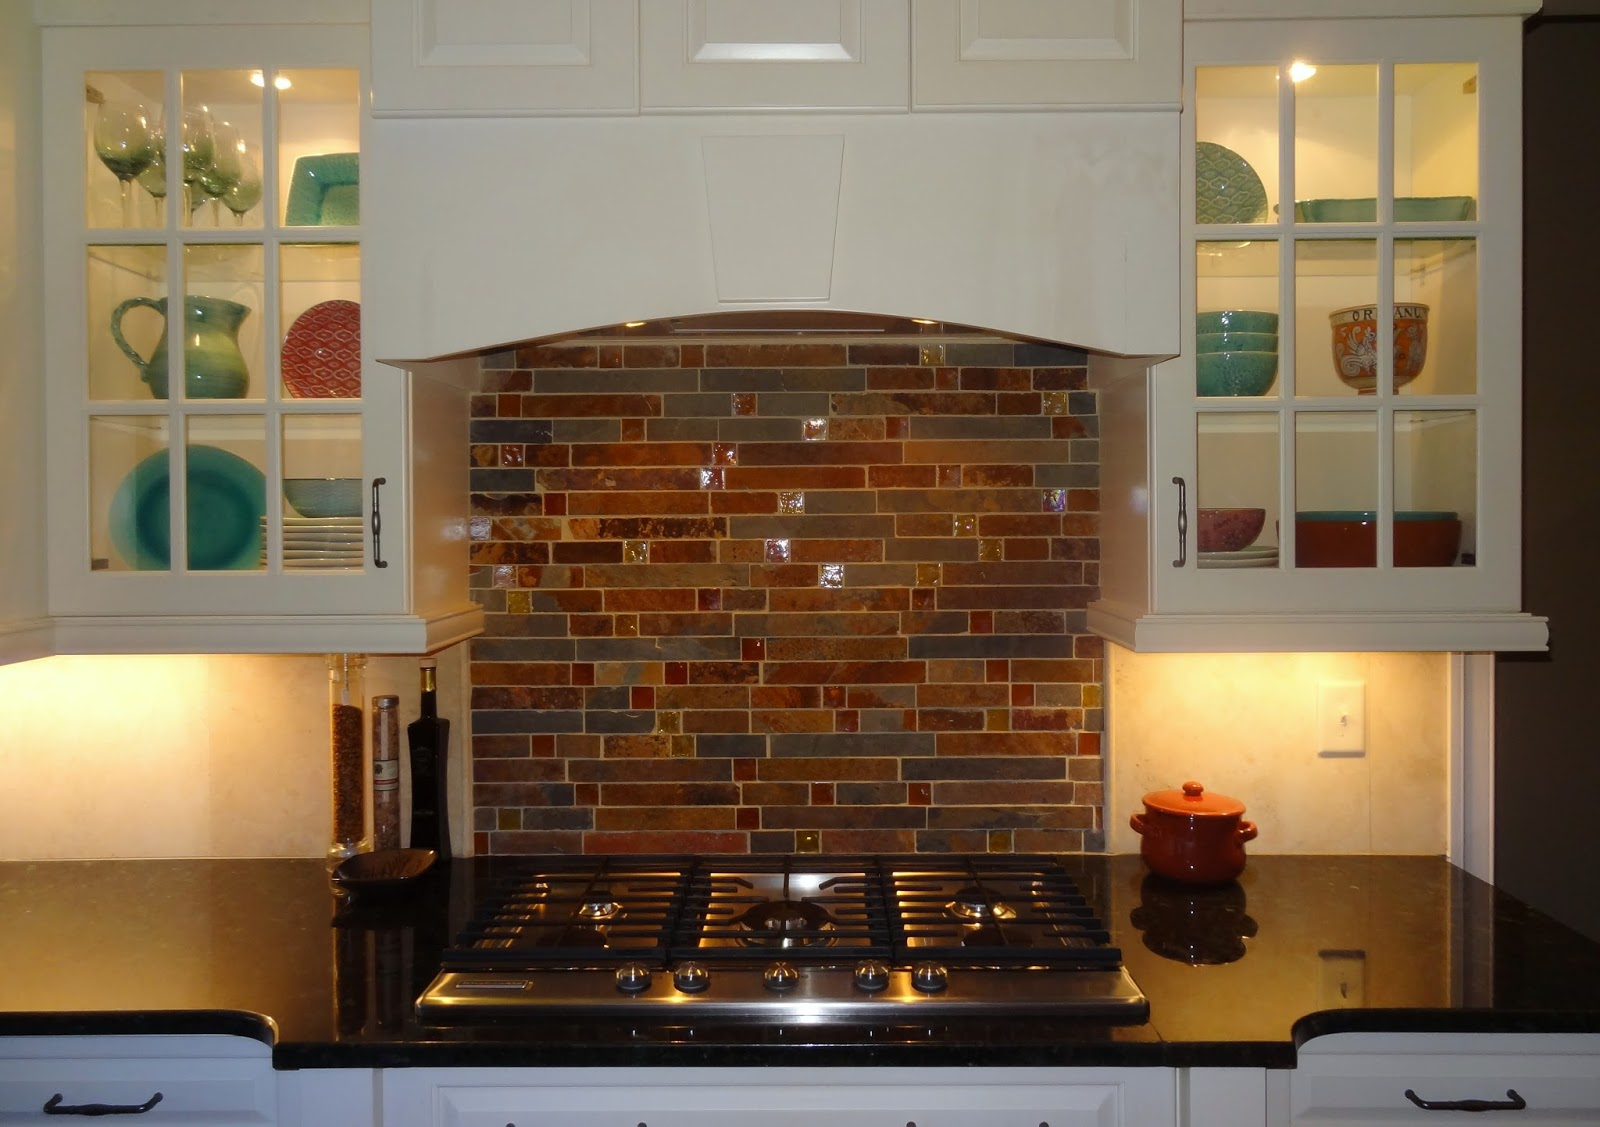 In This Greensboro, NC Kitchen, We Added Glass Doors And Lights